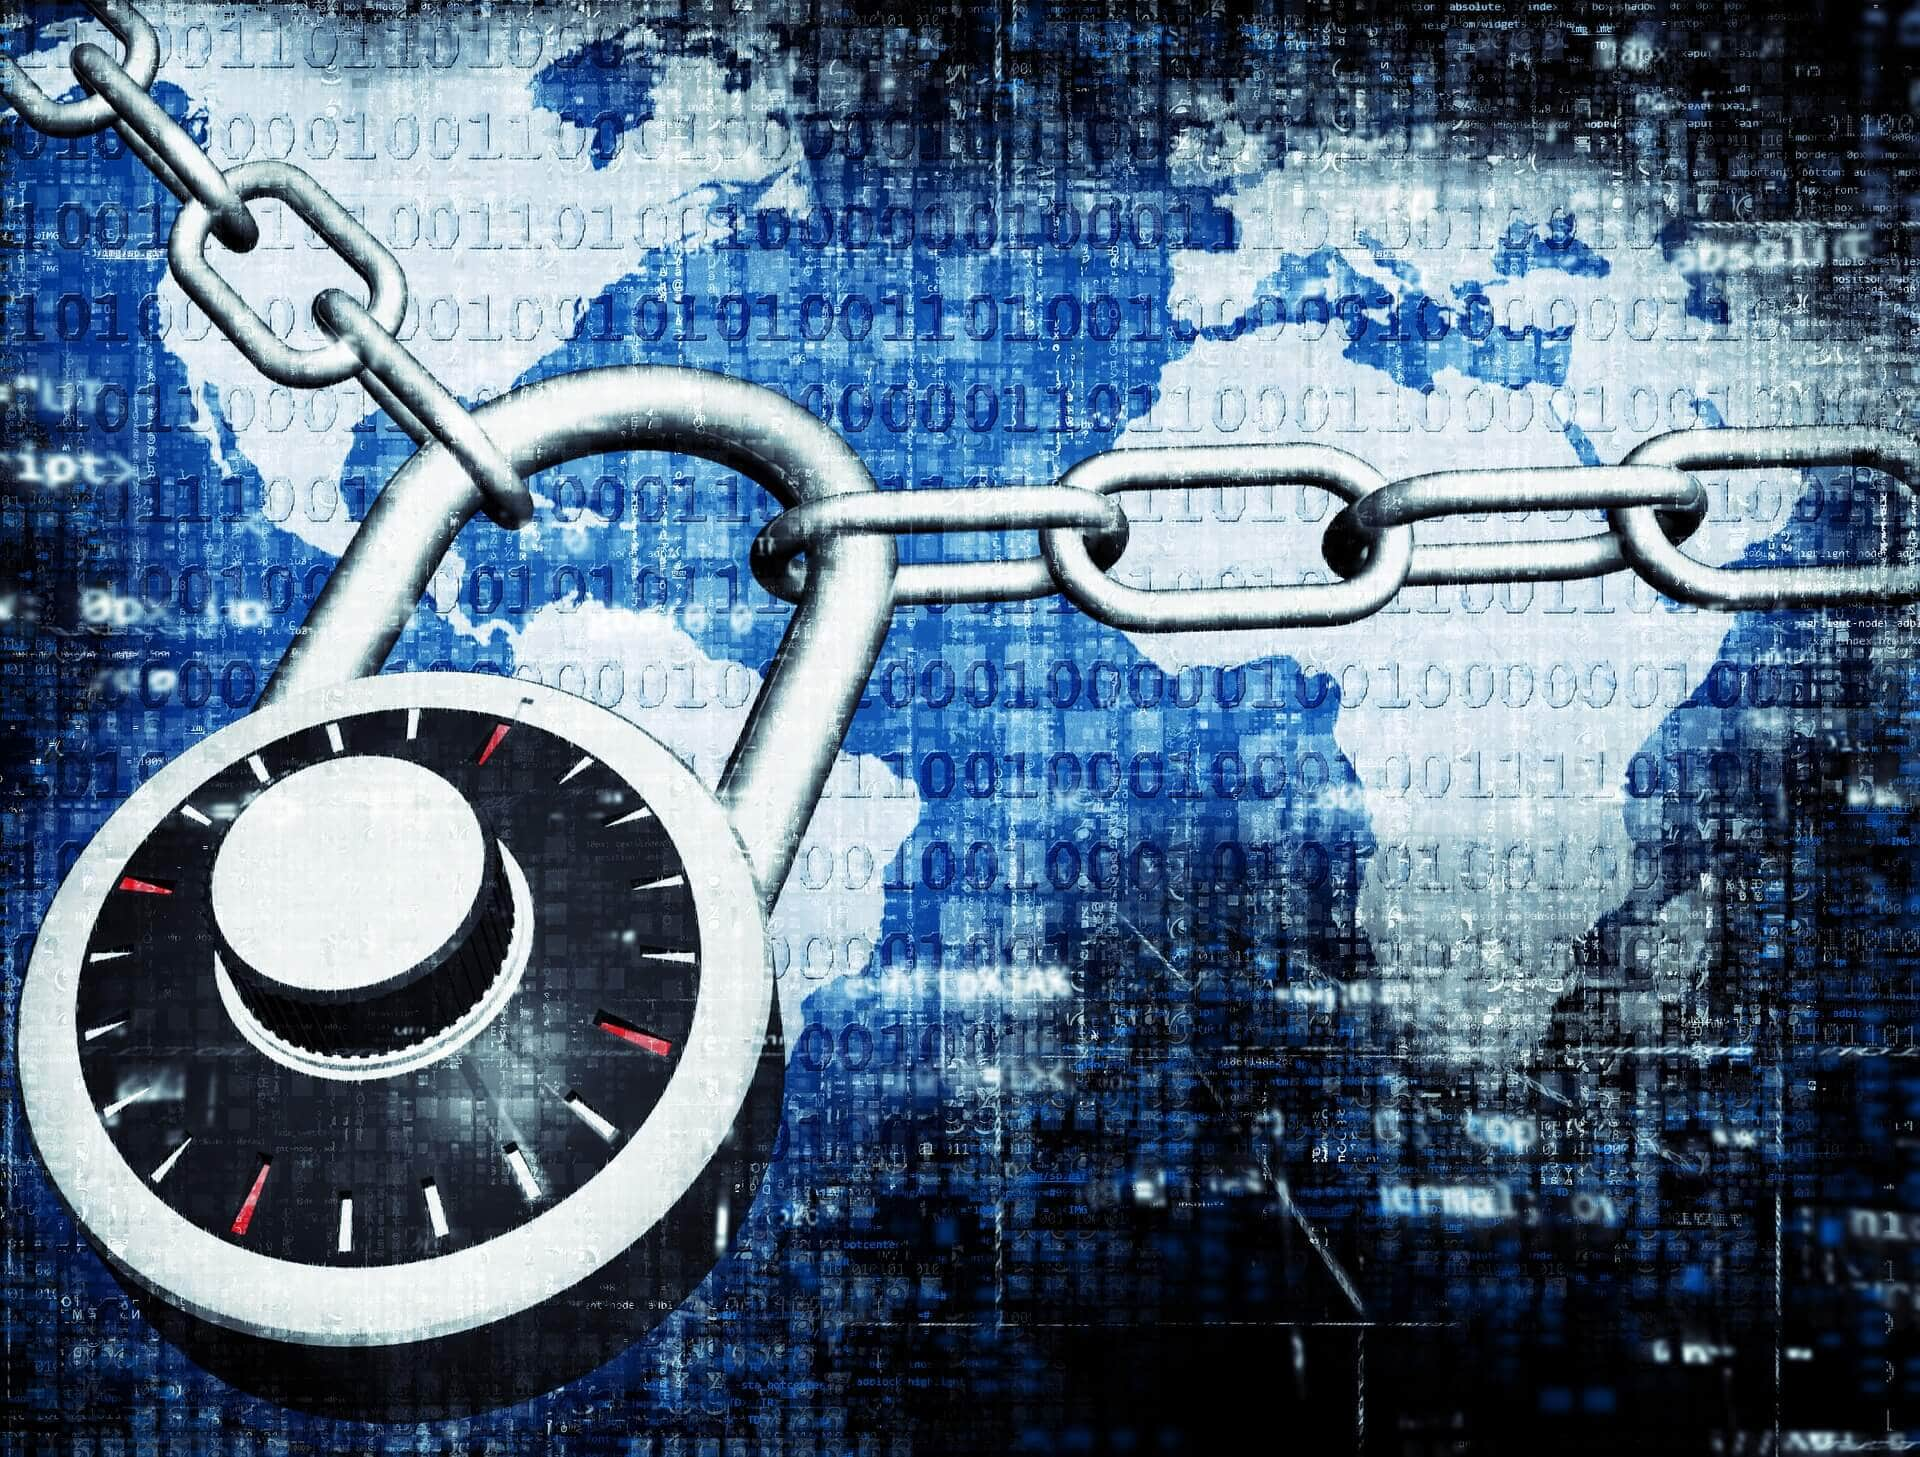 content/da-dk/images/repository/isc/2020/how-to-protect-your-internet-privacy.jpg